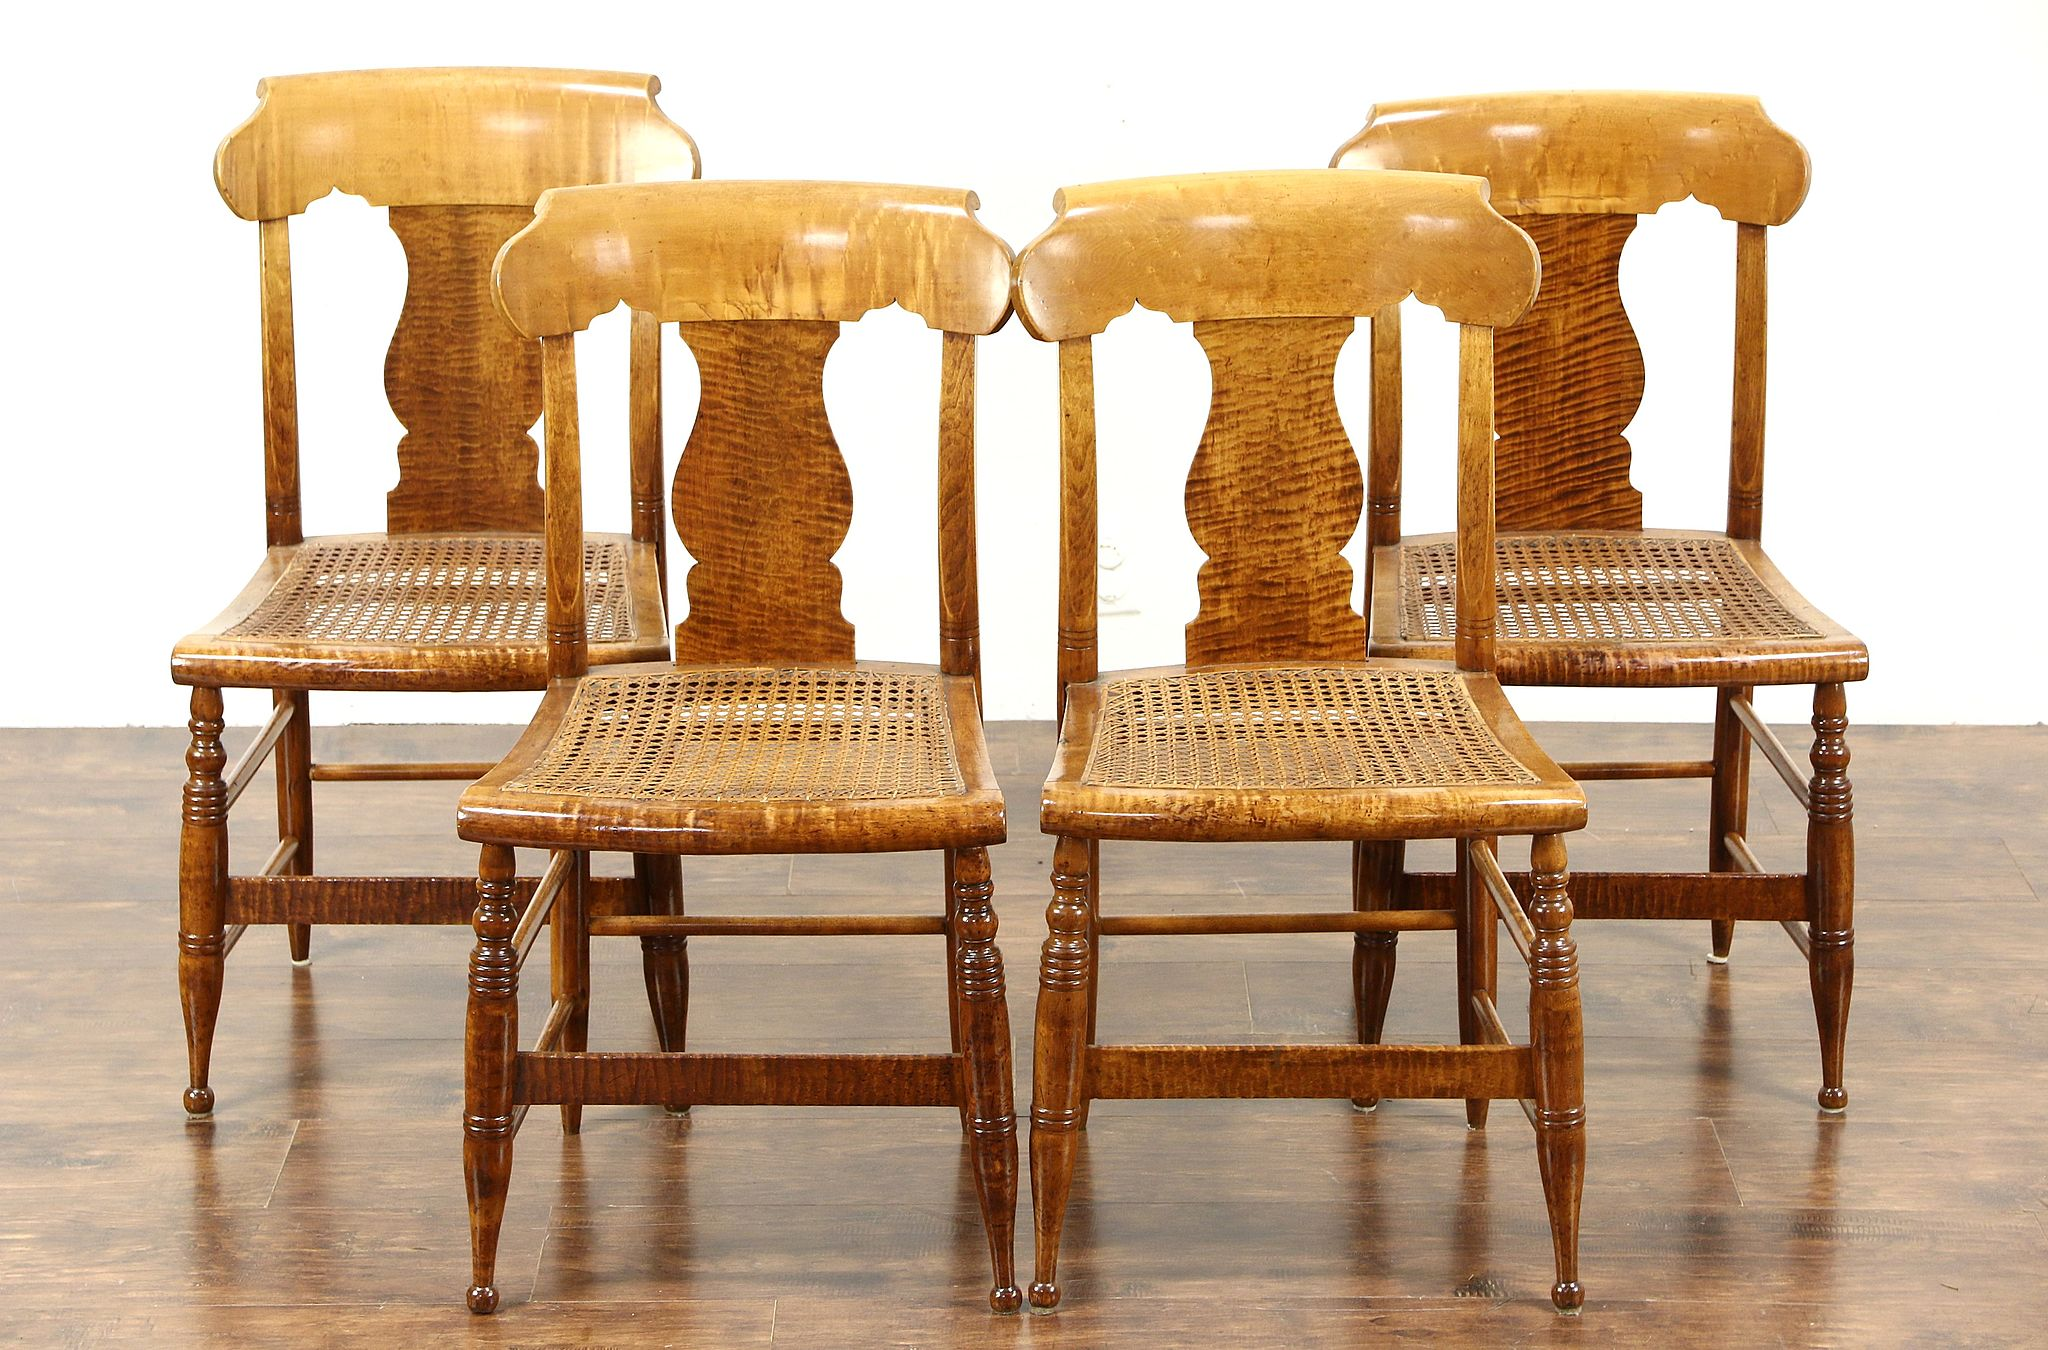 Sold Set Of 4 Antique 1830 Tiger Birdseye Curly Maple New England Dining Chairs Harp Gallery Antiques Furniture